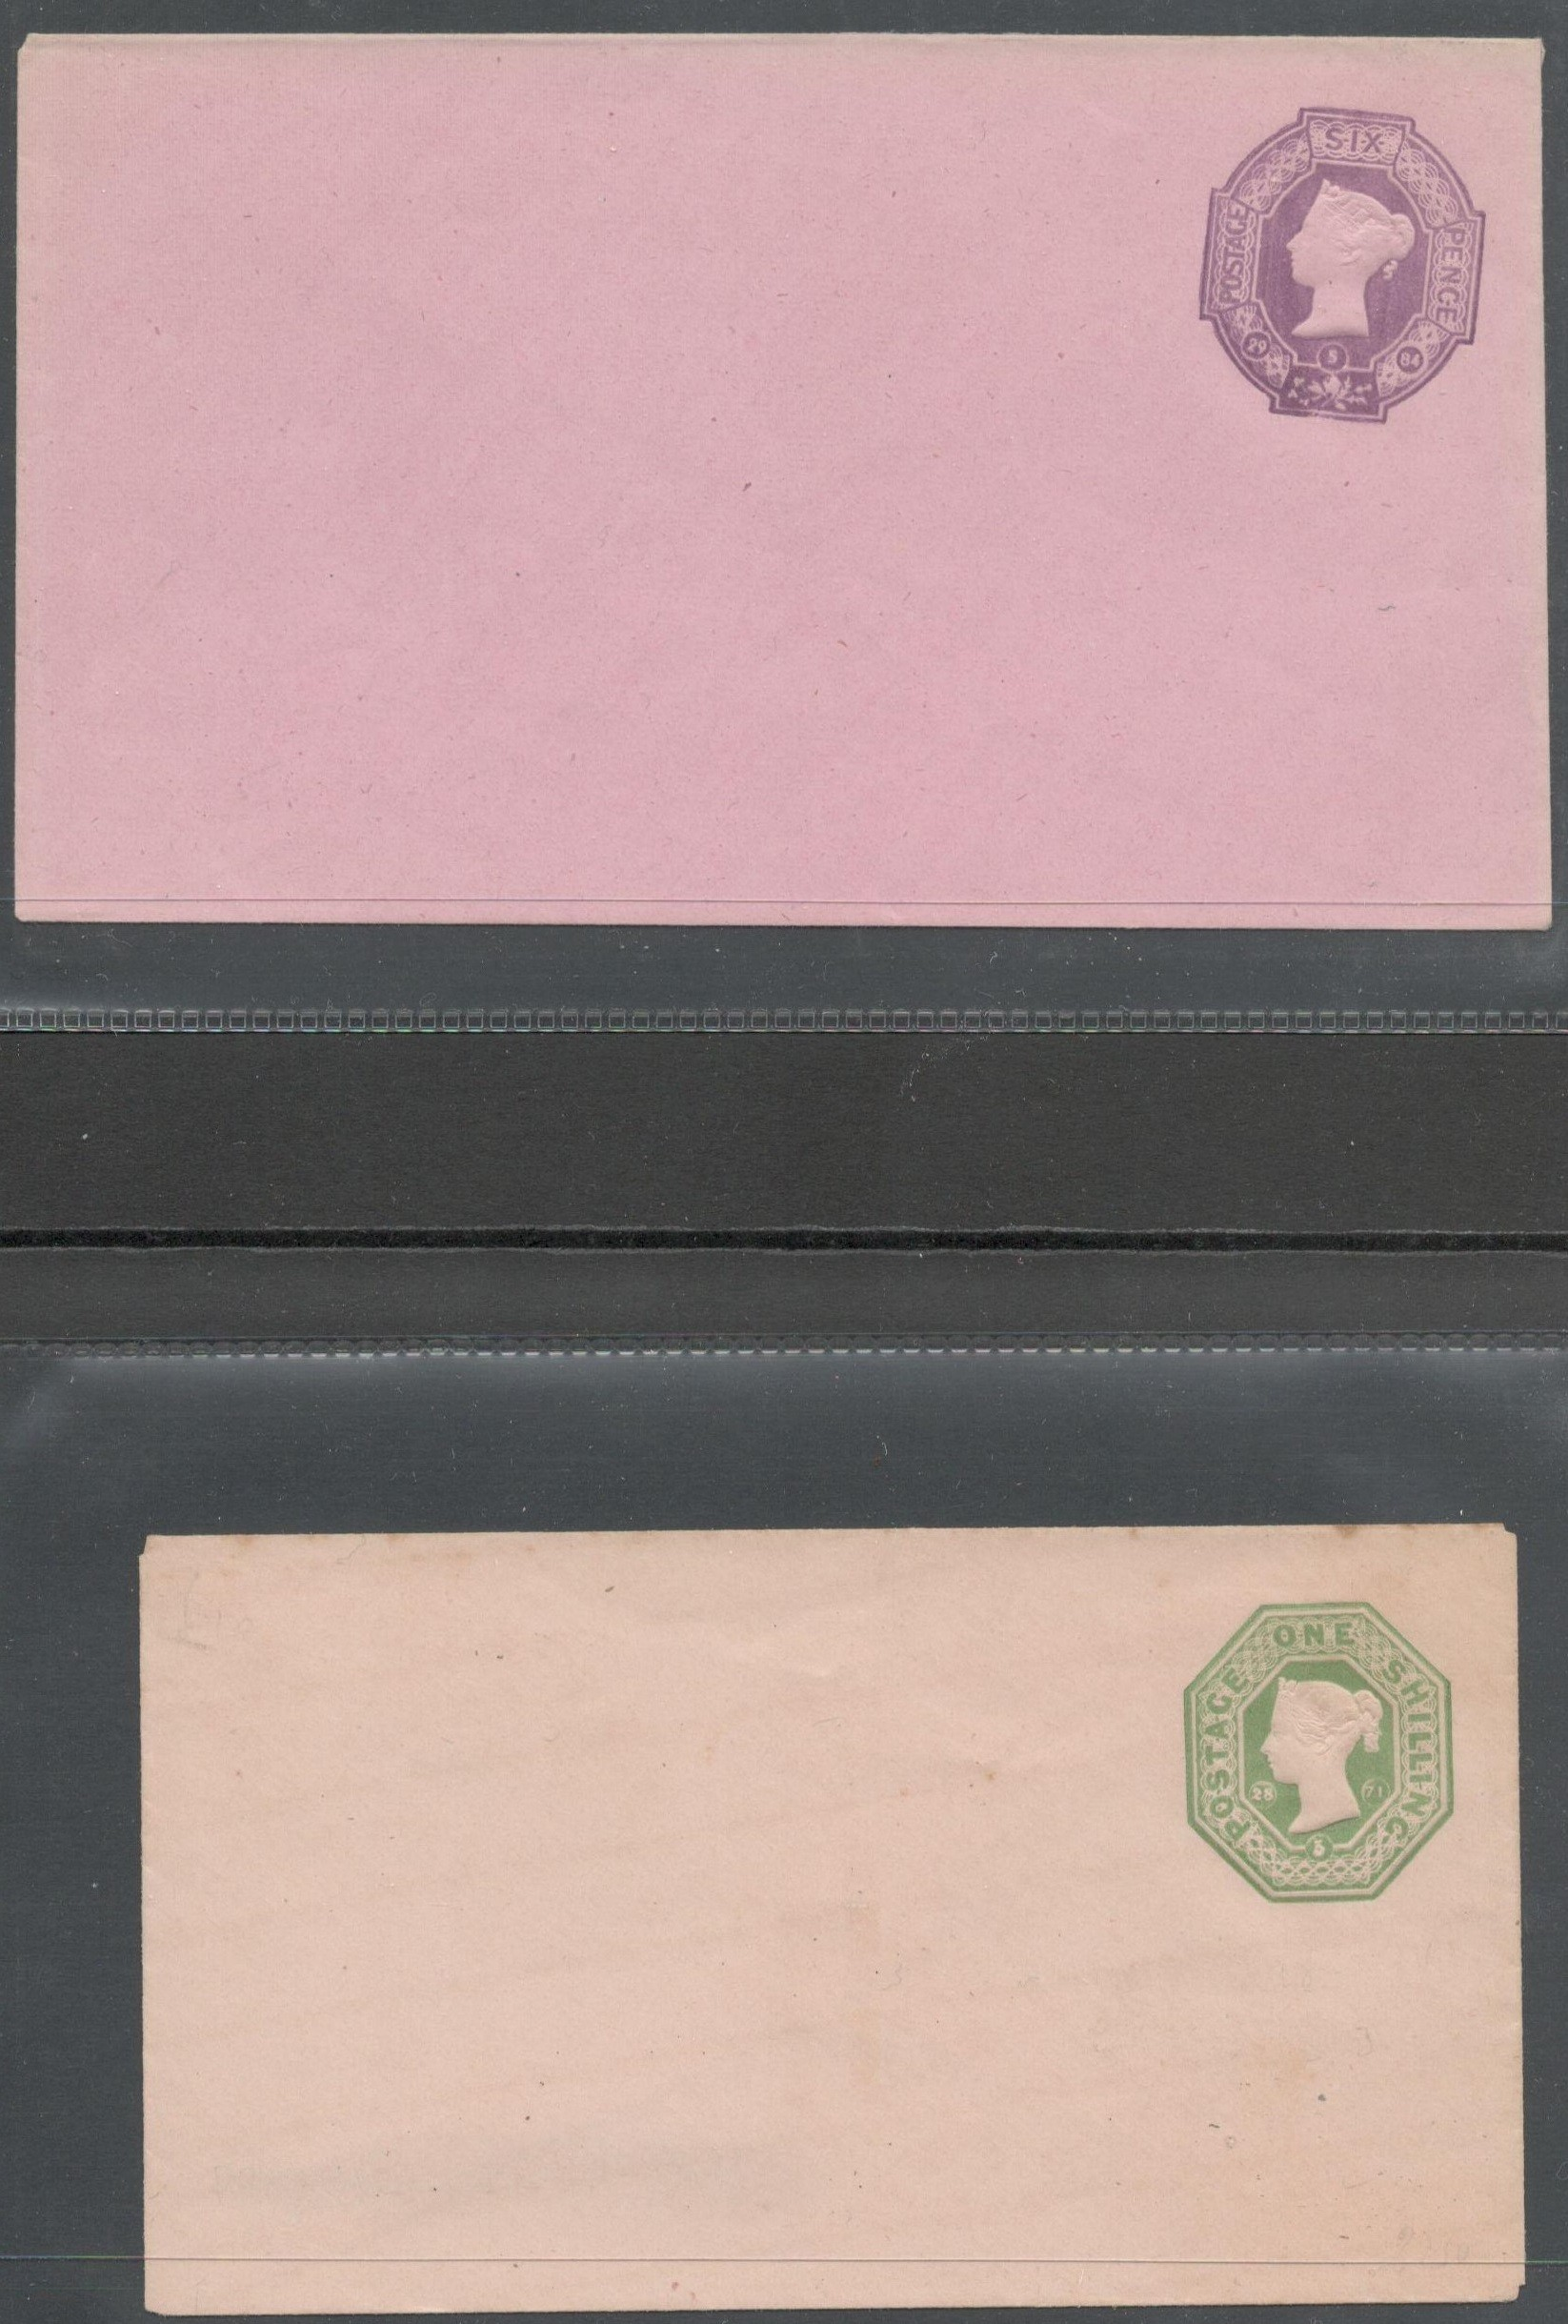 Lot 27 - QV POSTAL STATIONERY ENVELOPES WITH EMBOSSED STAMPS 6P (1884) & 1SHILLING (1871 )